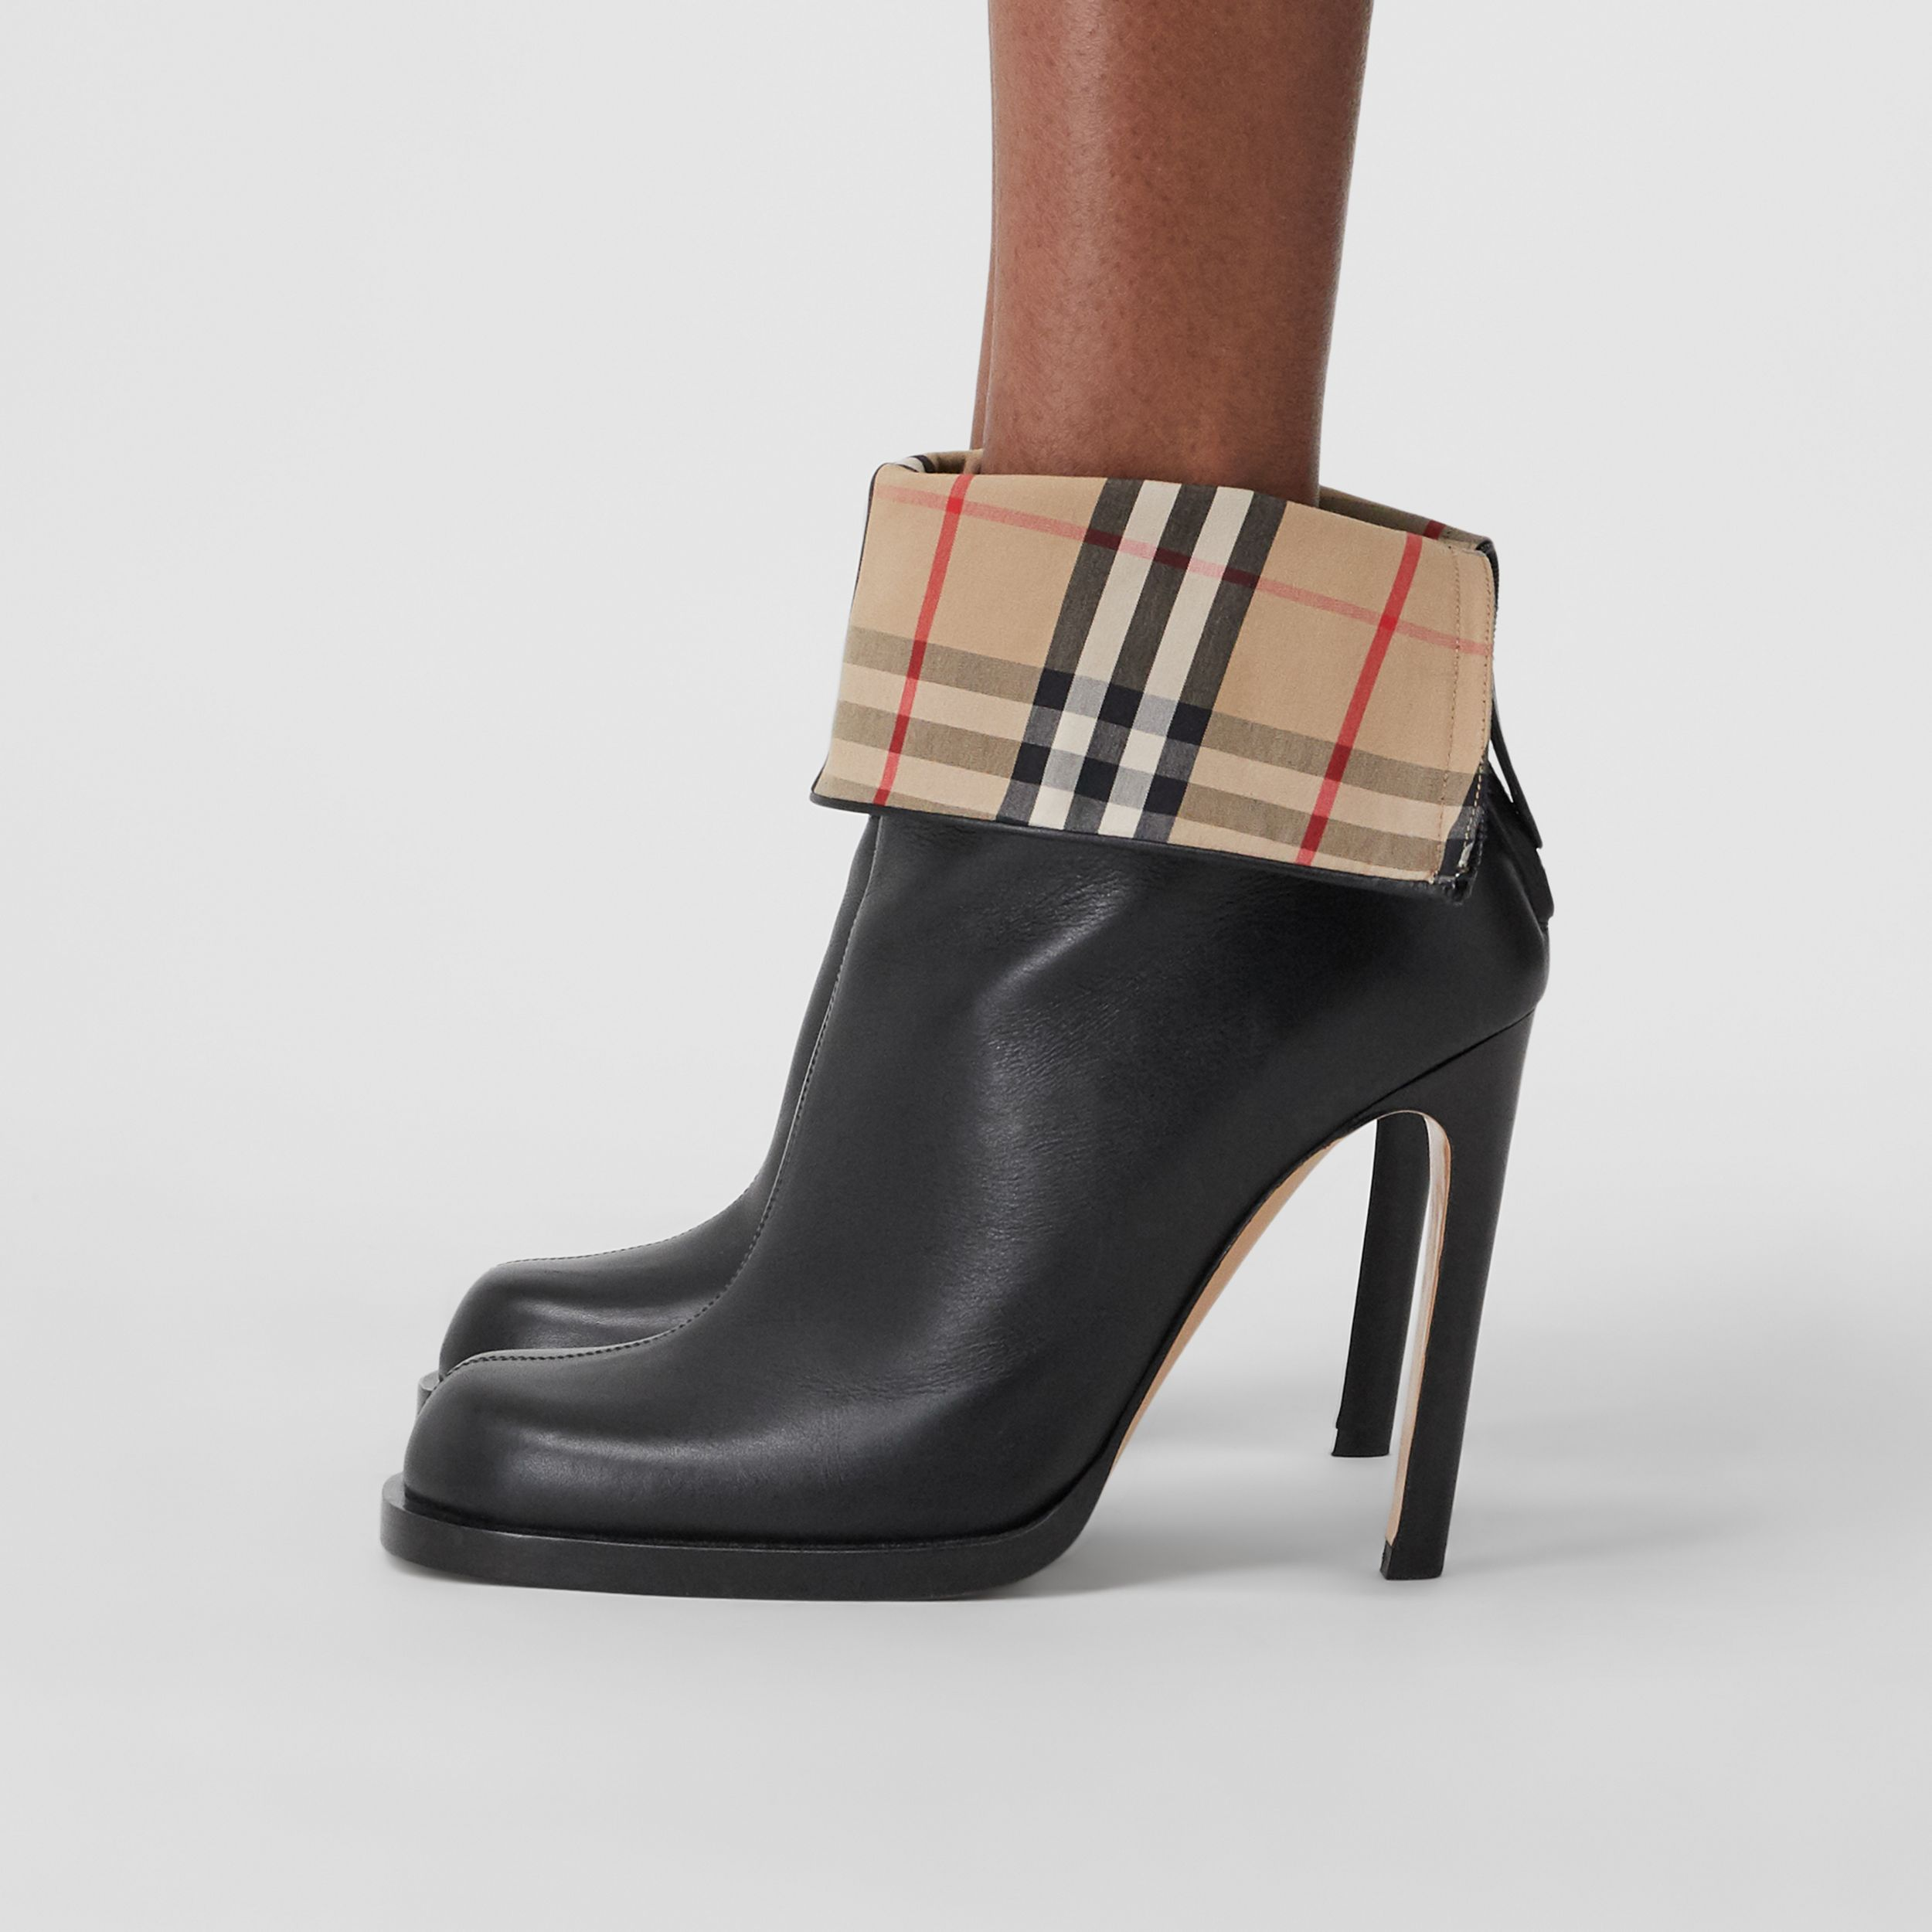 Vintage Check-lined Leather Ankle Boots in Black - Women | Burberry Hong Kong S.A.R. - 4